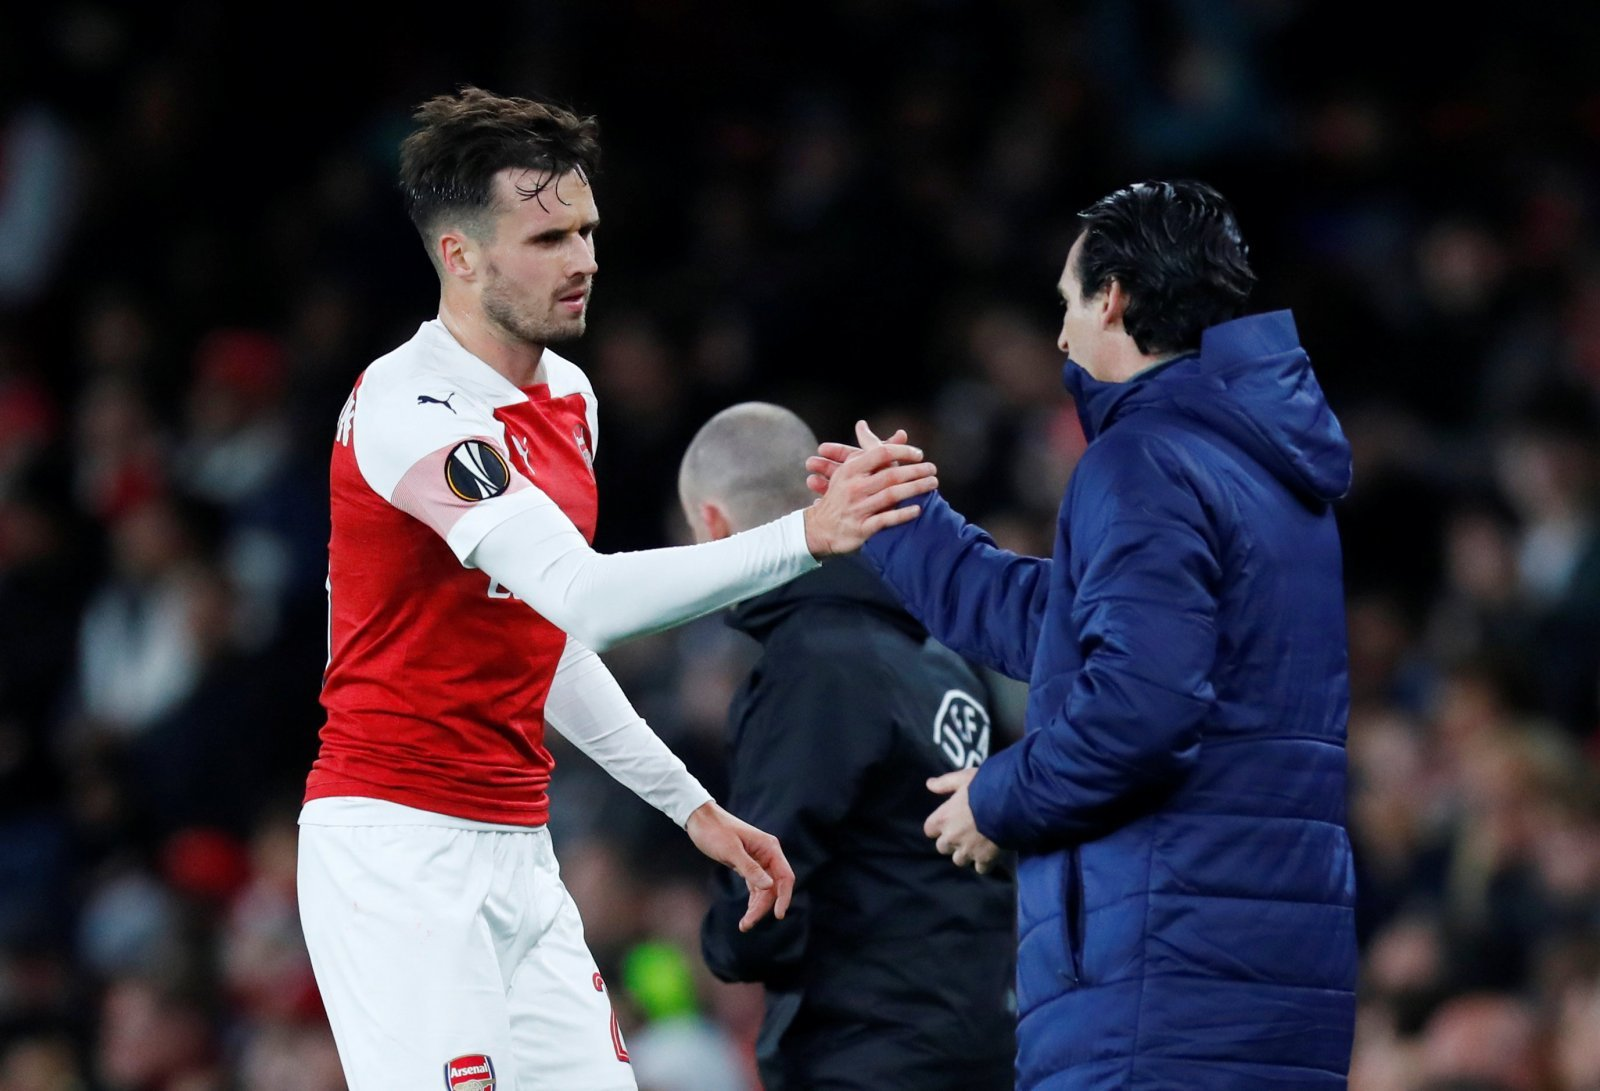 Arsenal: How Carl Jenkinson kept his place in the squad, and where his future lies